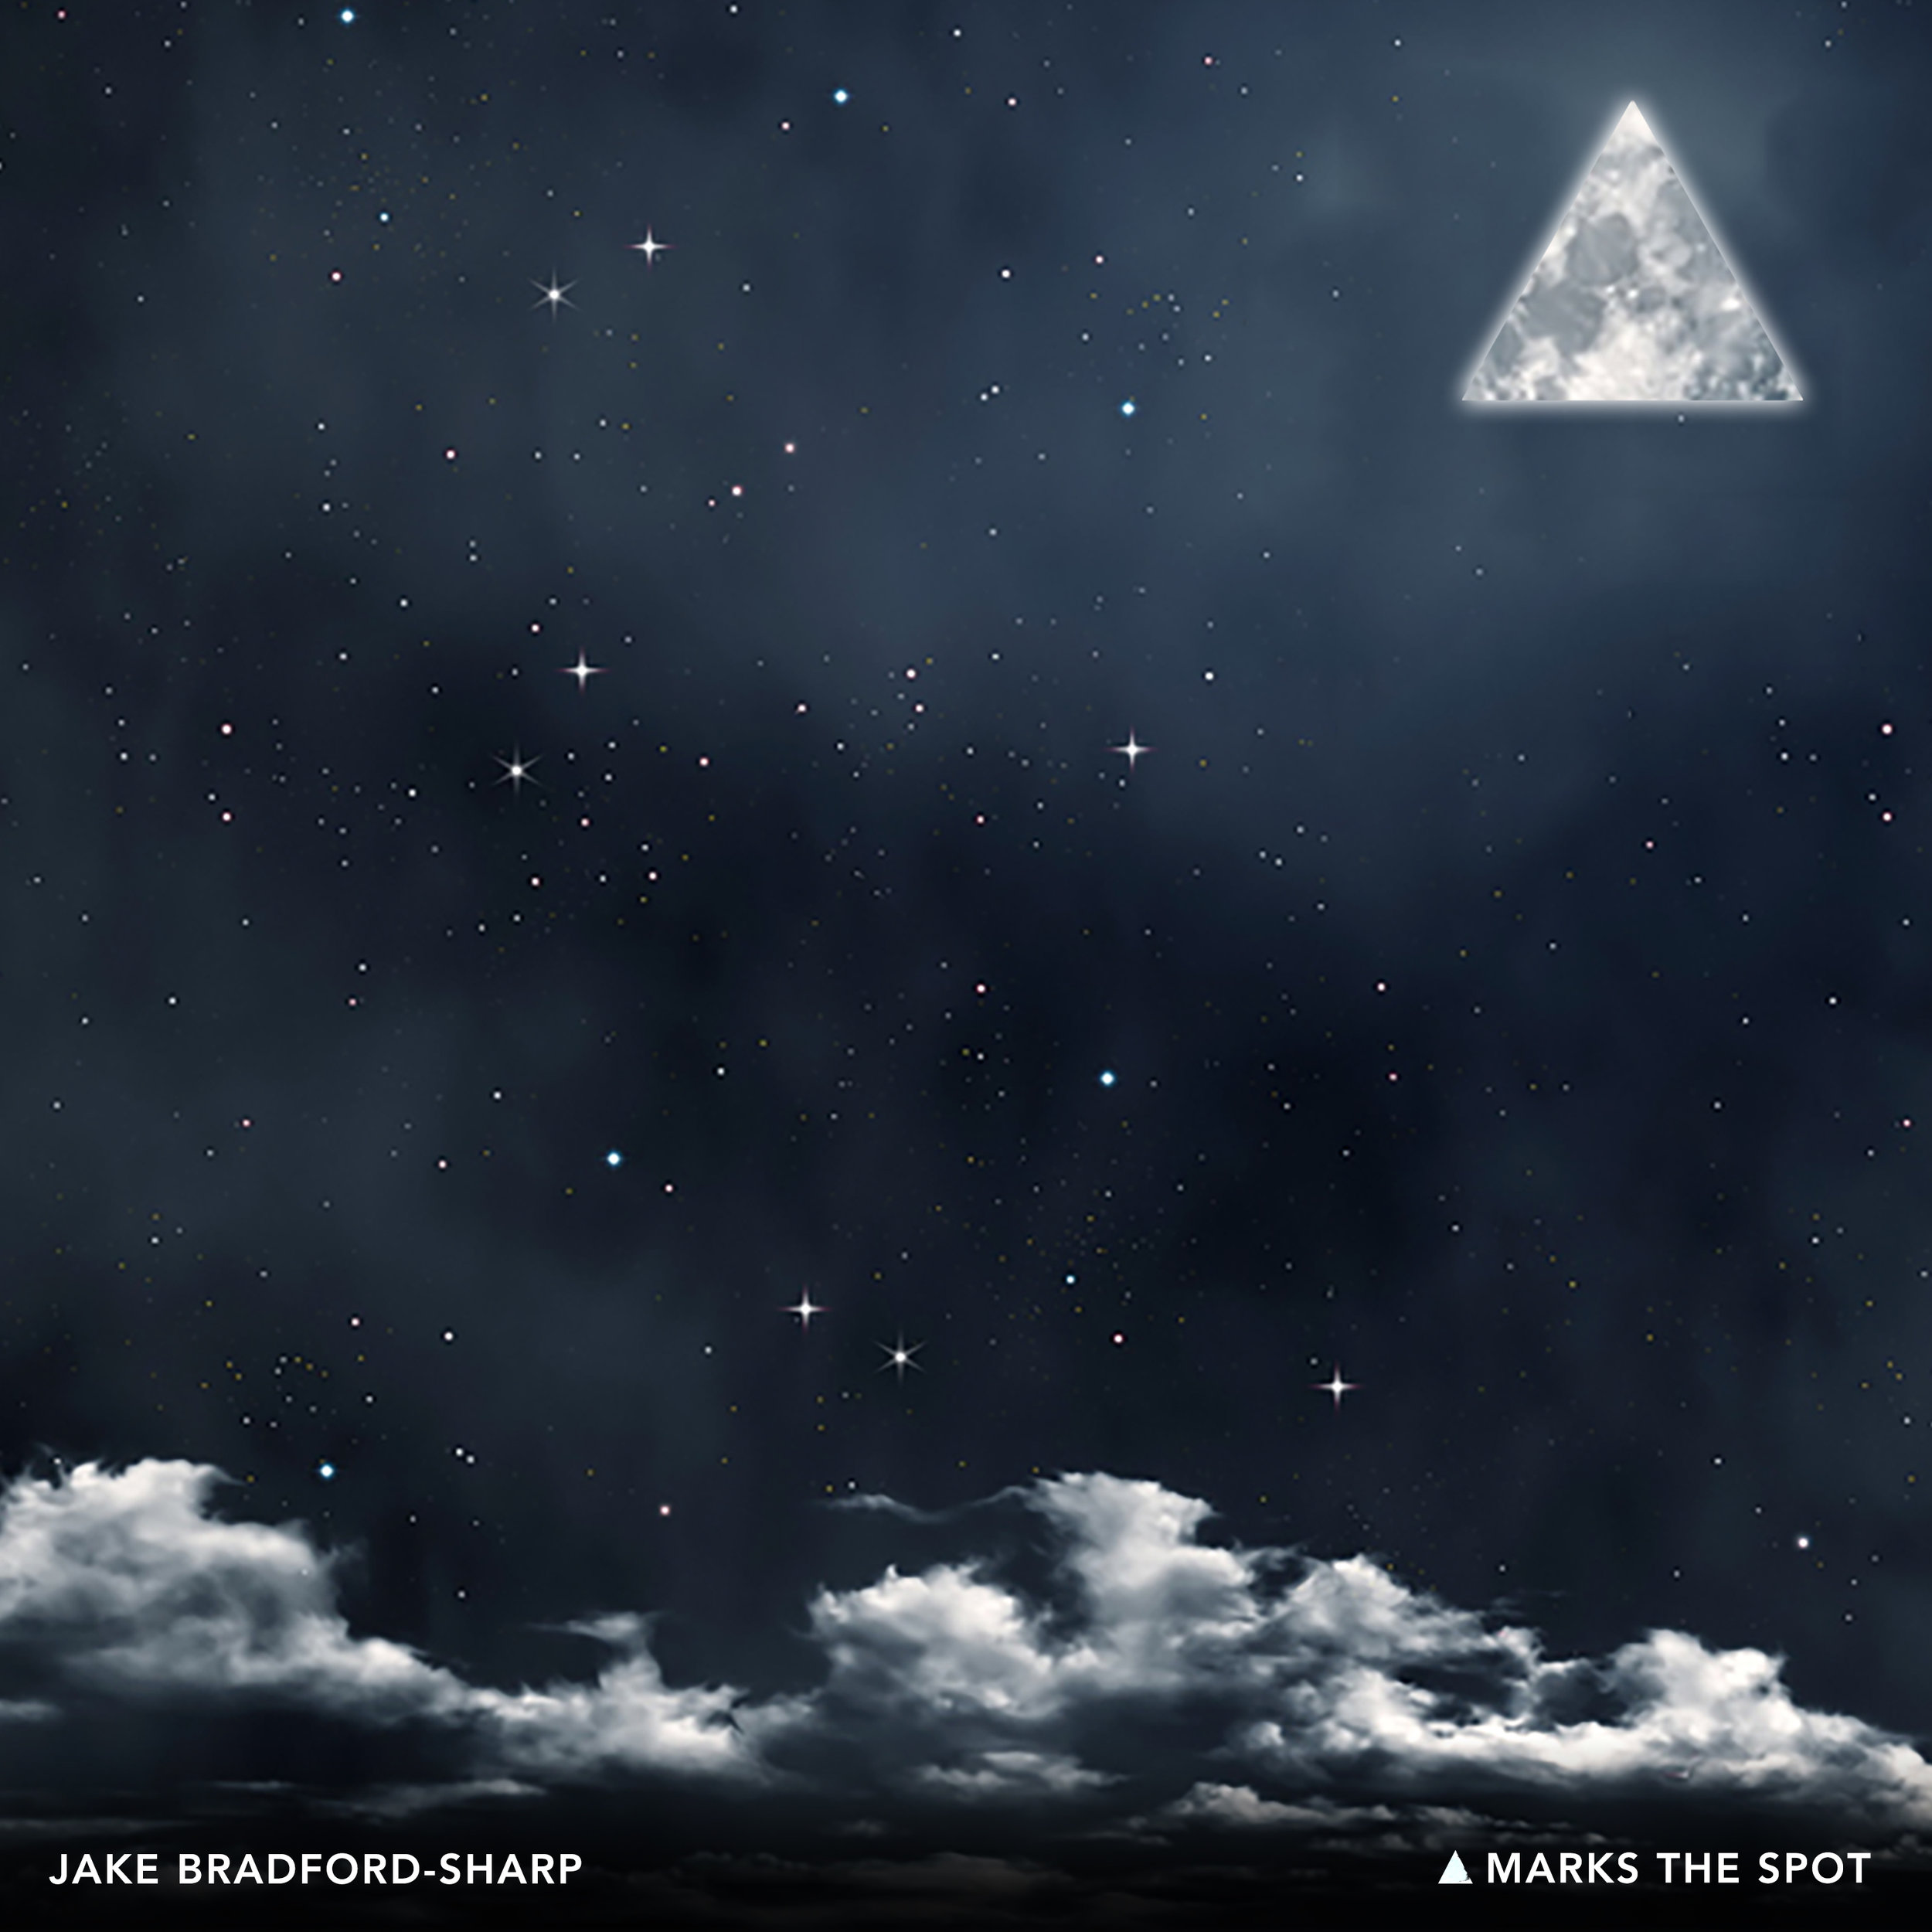 Triangle Marks The Spot Album Artwork.jpg